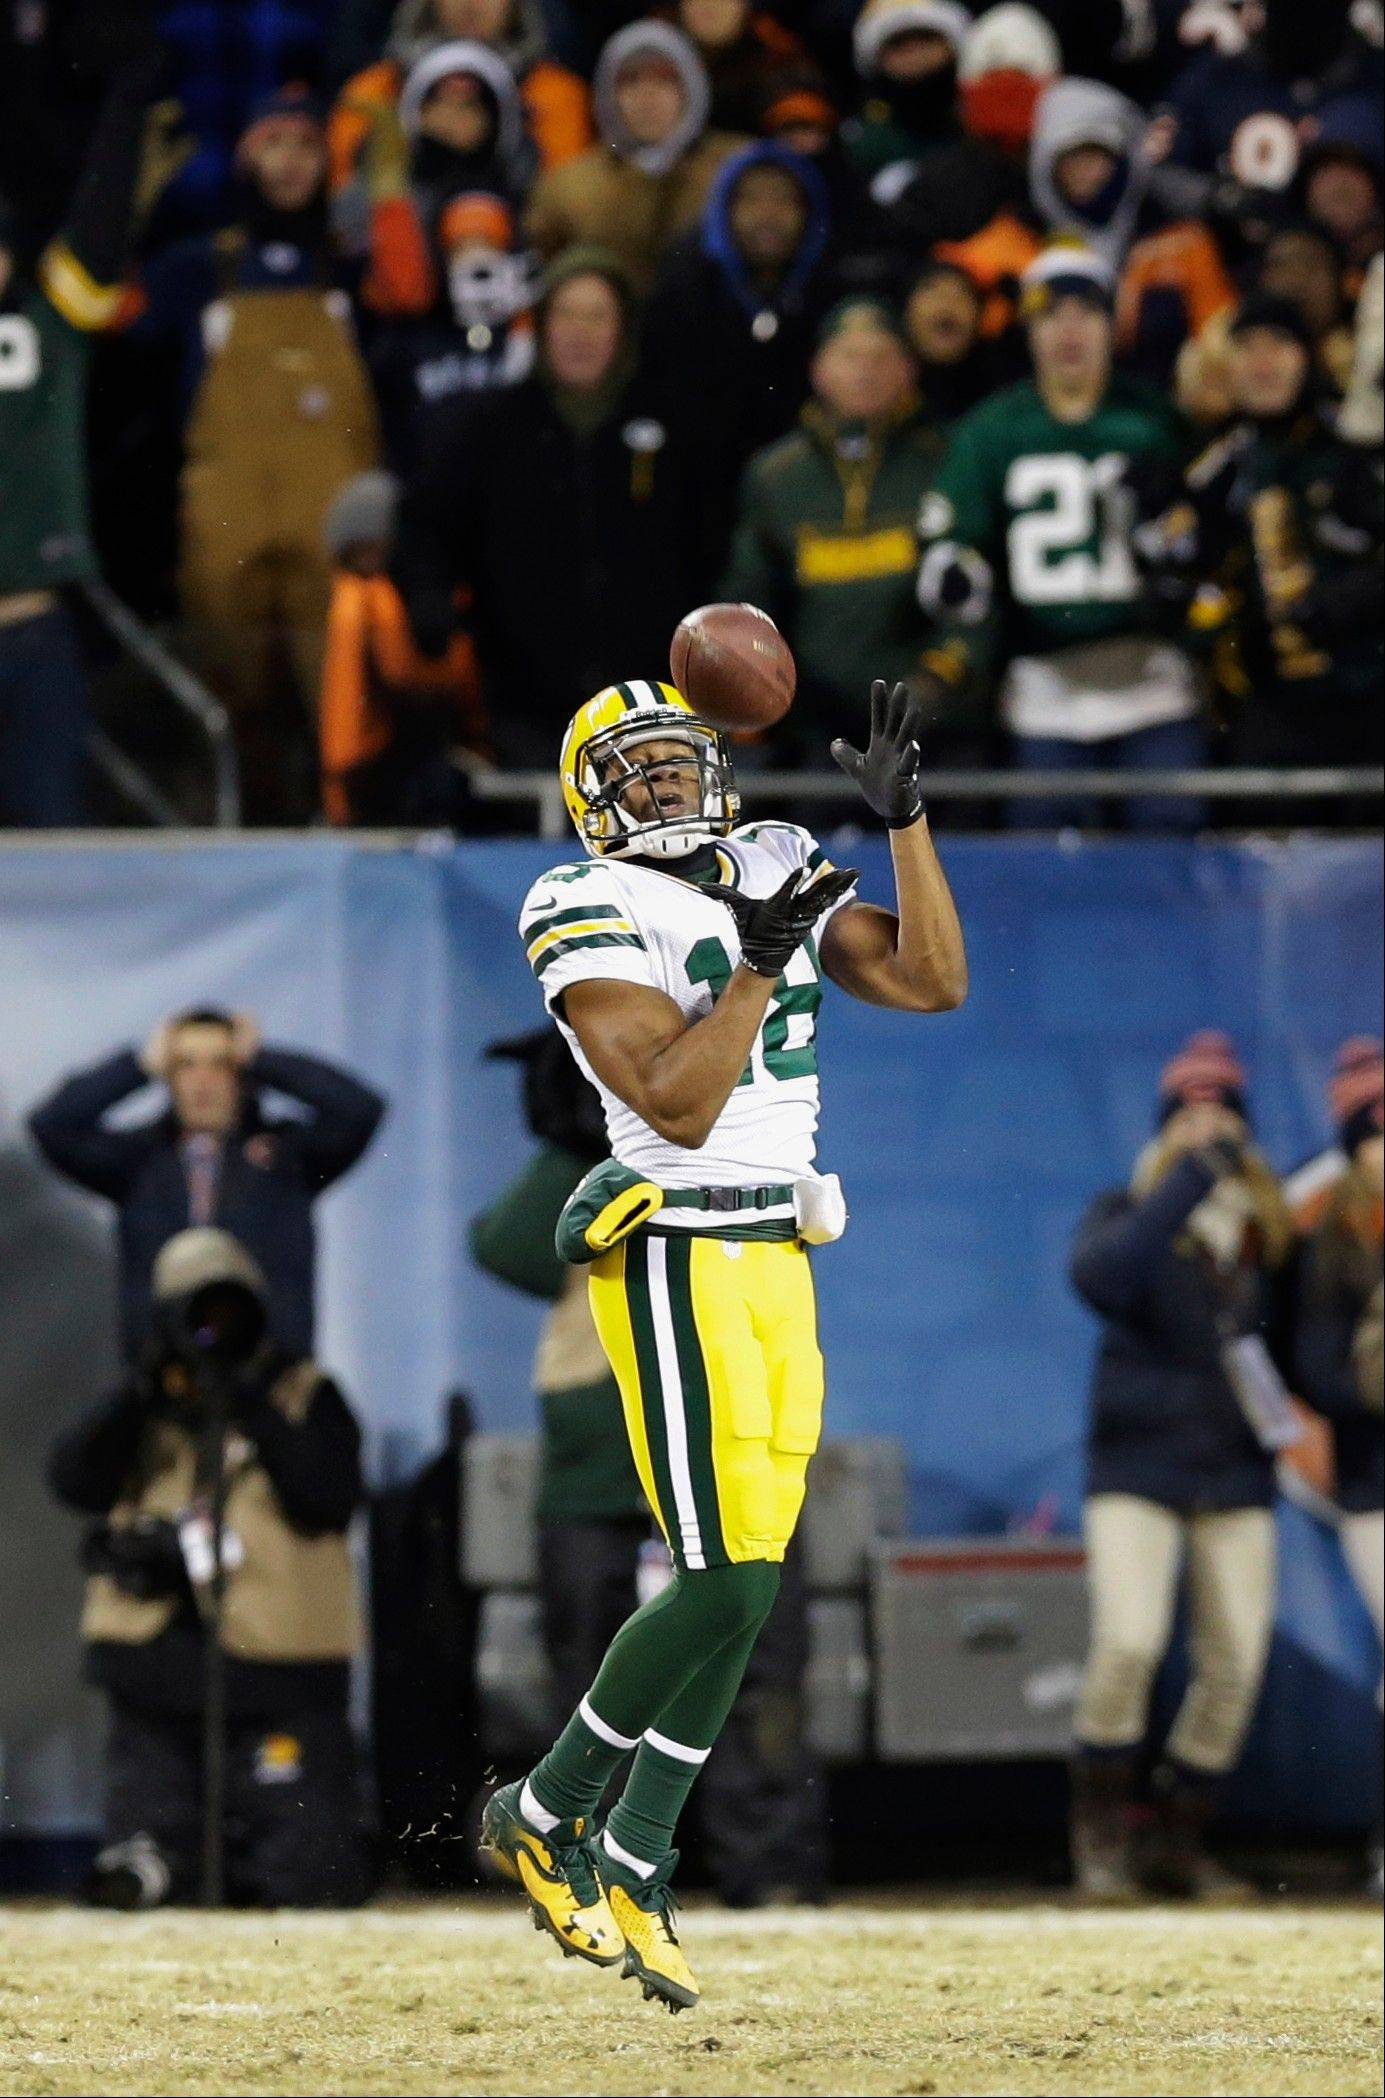 Green Bay Packers wide receiver Randall Cobb (18) makes the winning touchdown reception during the second half of an NFL football game against the Chicago Bears, Sunday, Dec. 29, 2013, in Chicago. The Packers won 33-28 to capture the NFC North title.